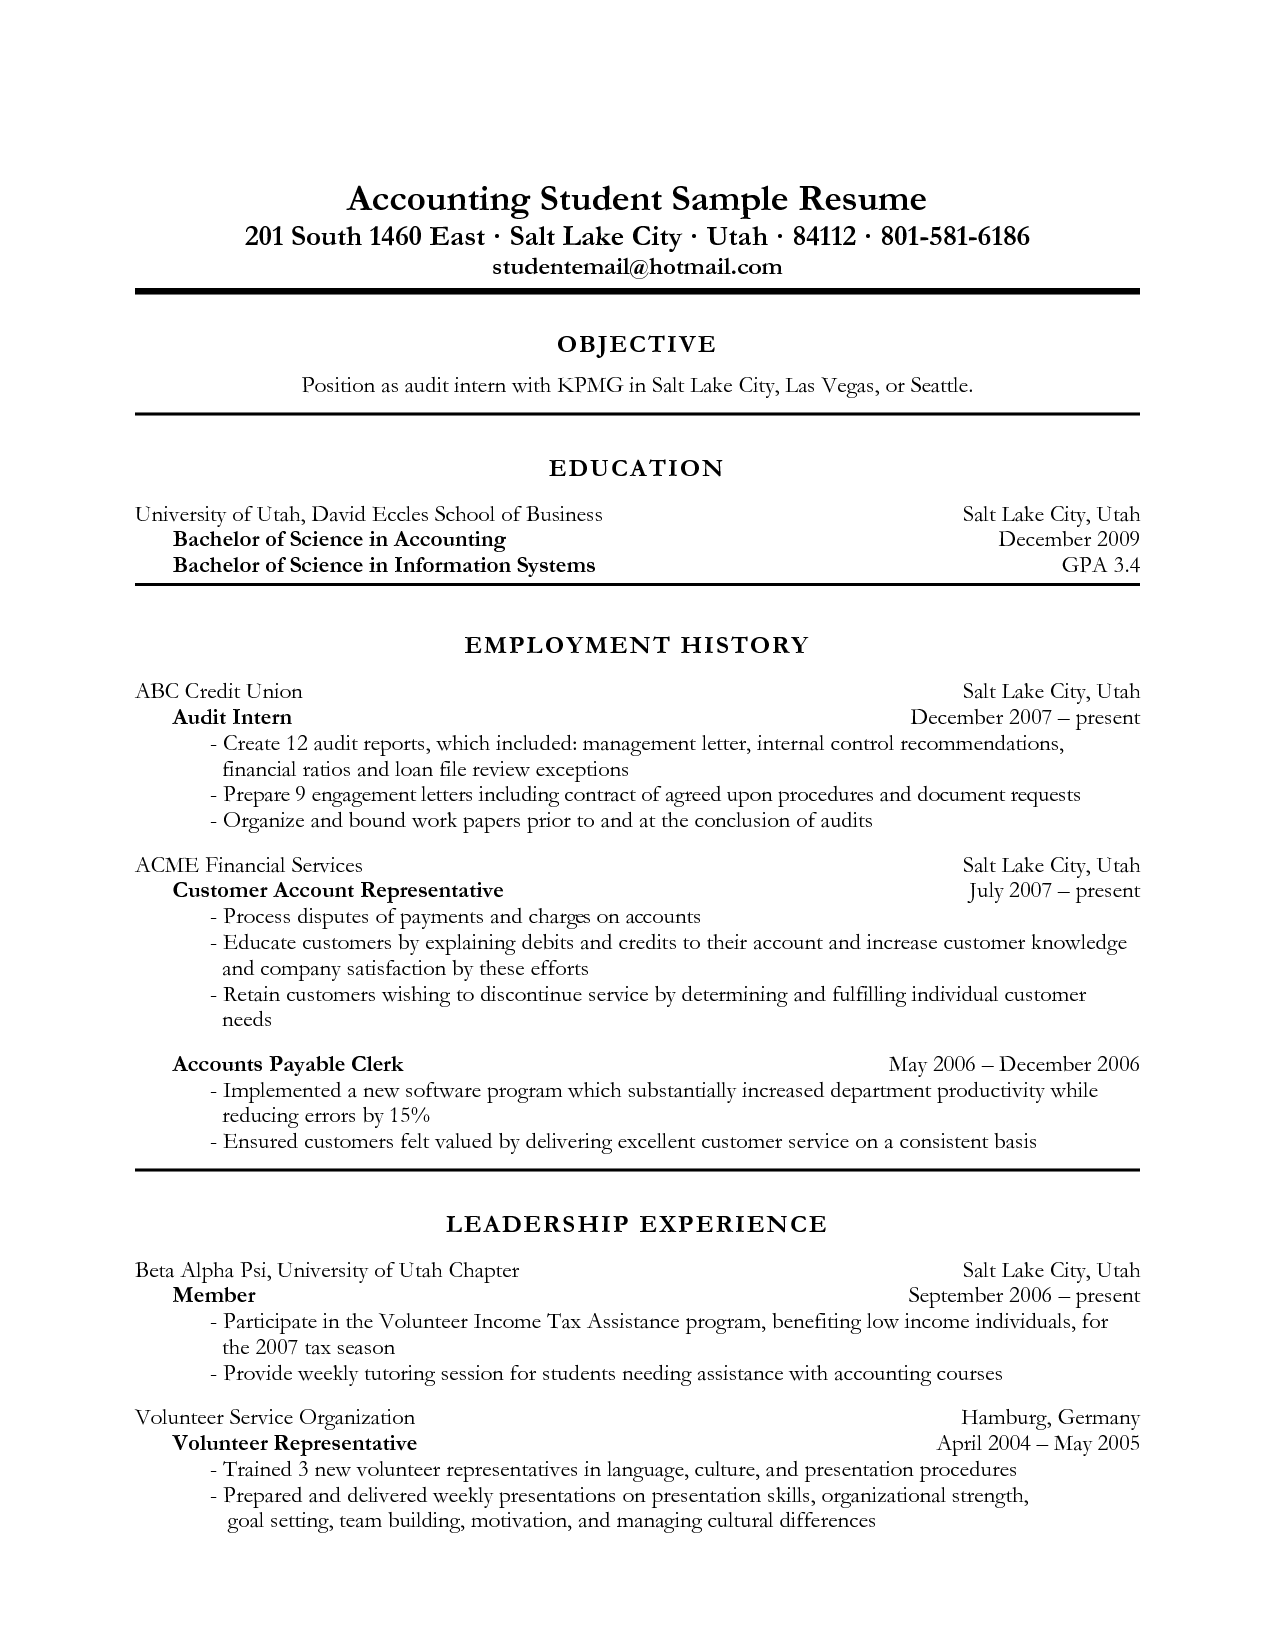 Accounting Resume Objective Examples